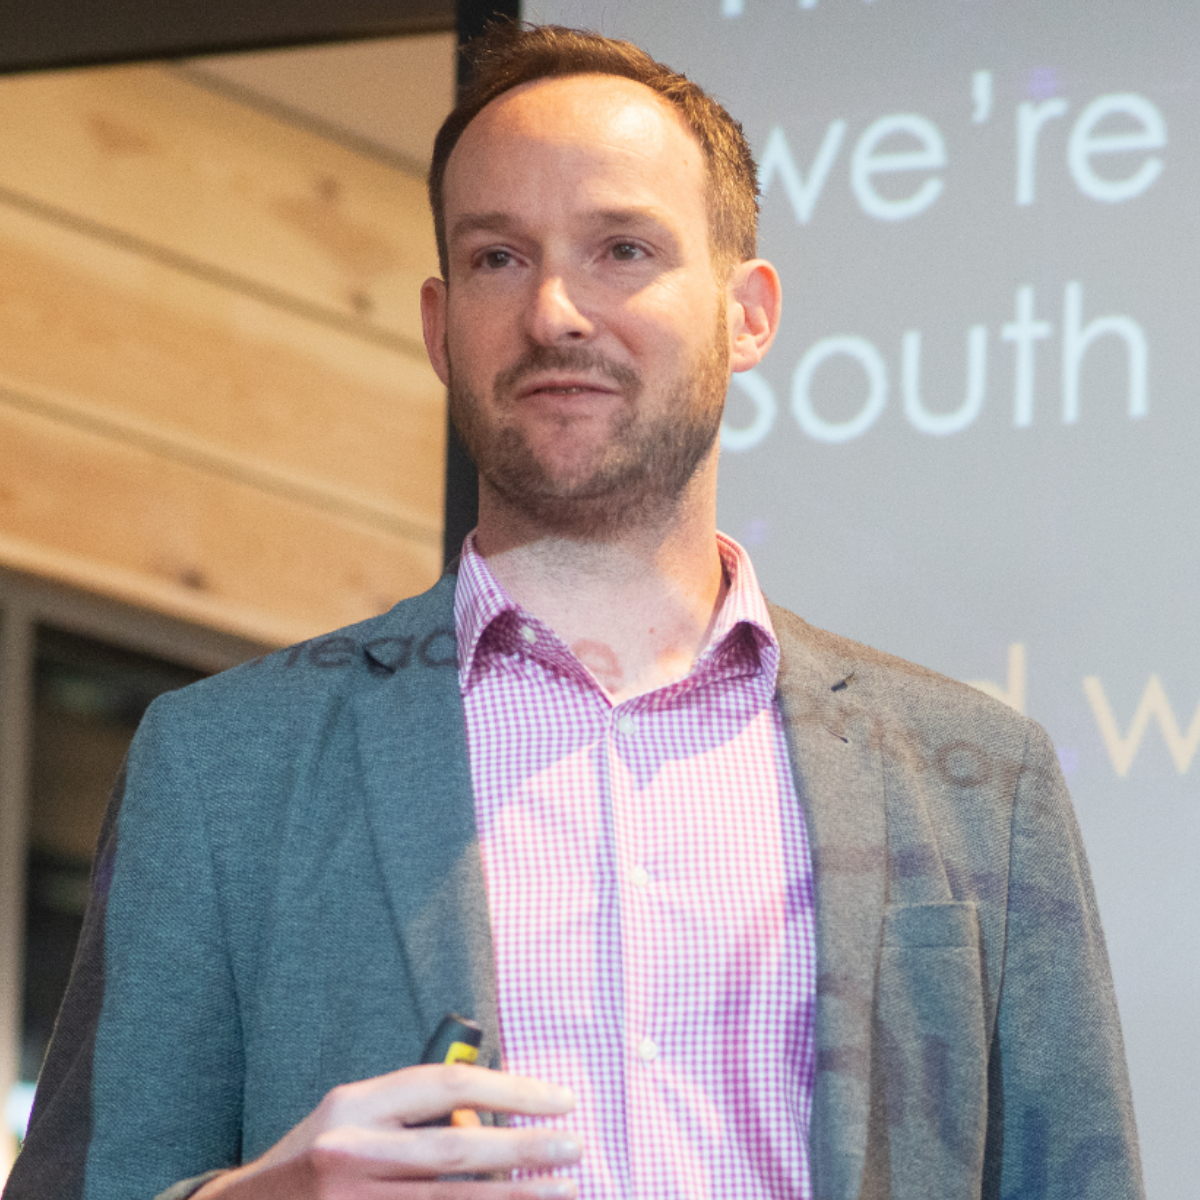 10th July 2019 - We are absolutely delighted to announce Gareth Miller of Carswell Gould as our opening speaker for Business Innovation South Expo.As MD of Carswell Gould, Gareth works with some of the UK's most ambitious brands and world-class creative minds. His career has spanned both agency and client-side roles and, over the past twenty years, these experiences have given him rare insight into the marketing strategies and tactics that really help businesses succeed.Gareth's primary focus is to execute marketing communications that deliver an outstanding return on investment for his clients. To achieve this he keeps the agency looking to the future, anticipating trends and providing considered long term solutions.Carswell Gould were recently invited to contribute to the Hampshire 2050 report commissioned by the Hampshire County Council looking at a vision of the County in 2050 and the impact that will have on work, skills and lifestyle. Gareth will be talking around the business element and the vital role that innovation and creativity will play to keep pace. #innovation #creativity #thefuture